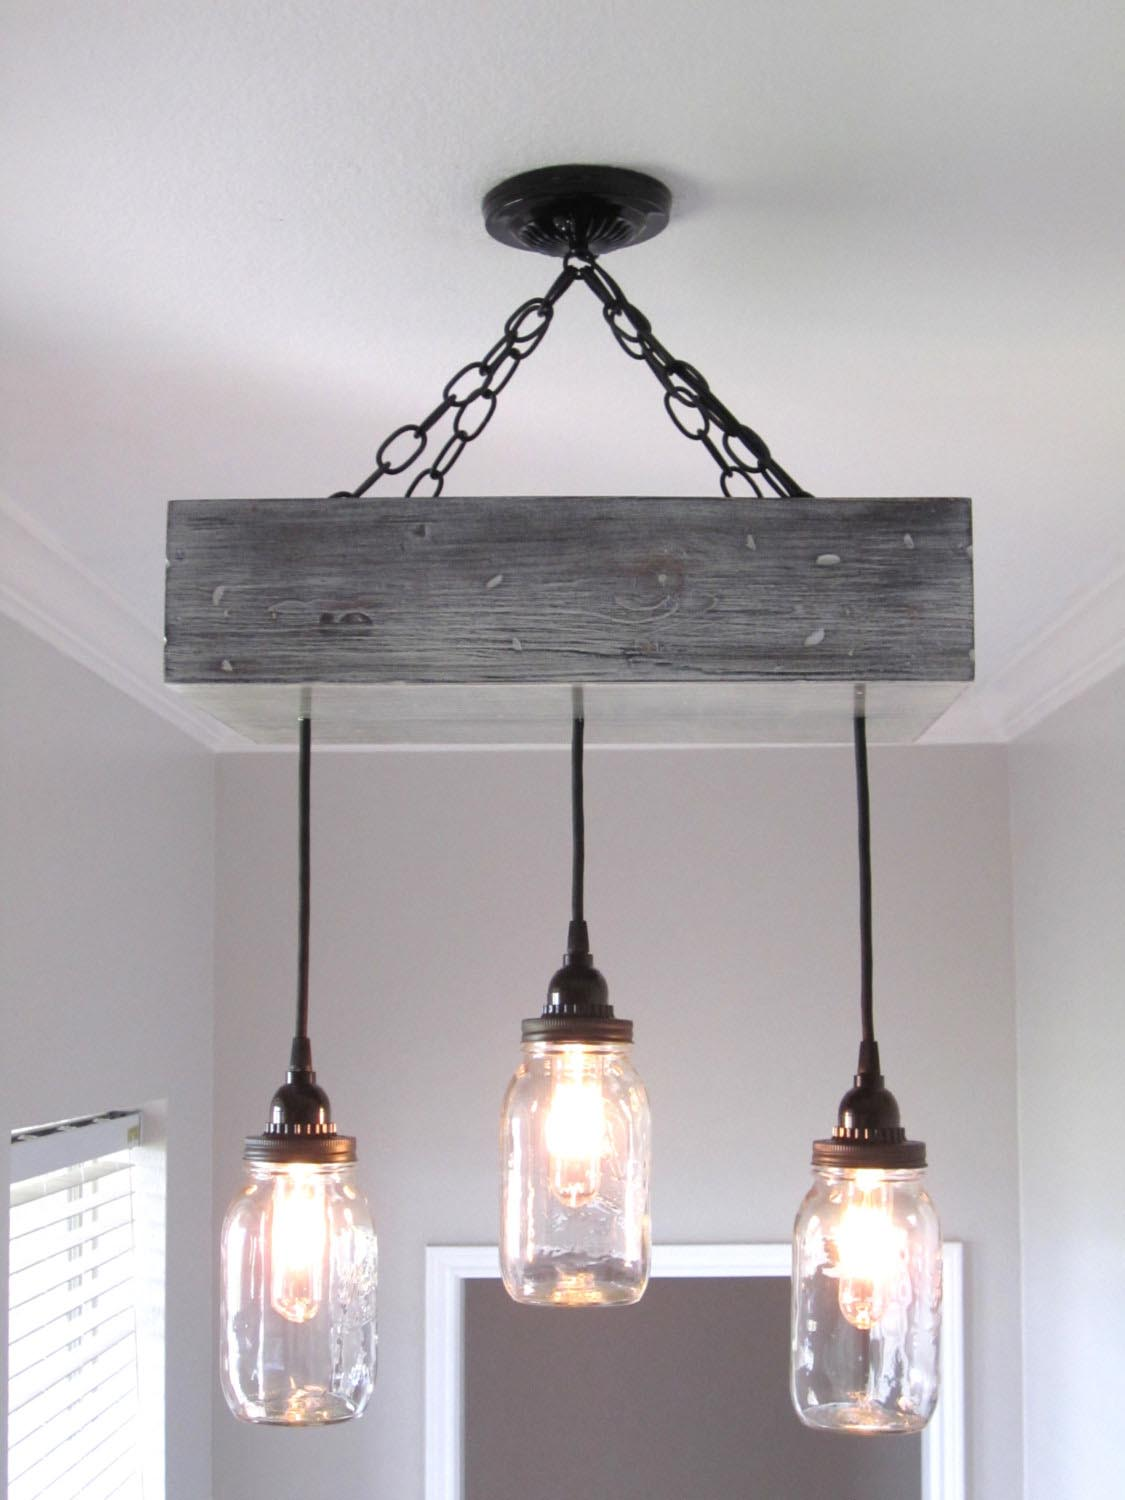 Farmhouse ceiling light fixtures light fixtures design ideas - Chandelier en verre pas cher ...